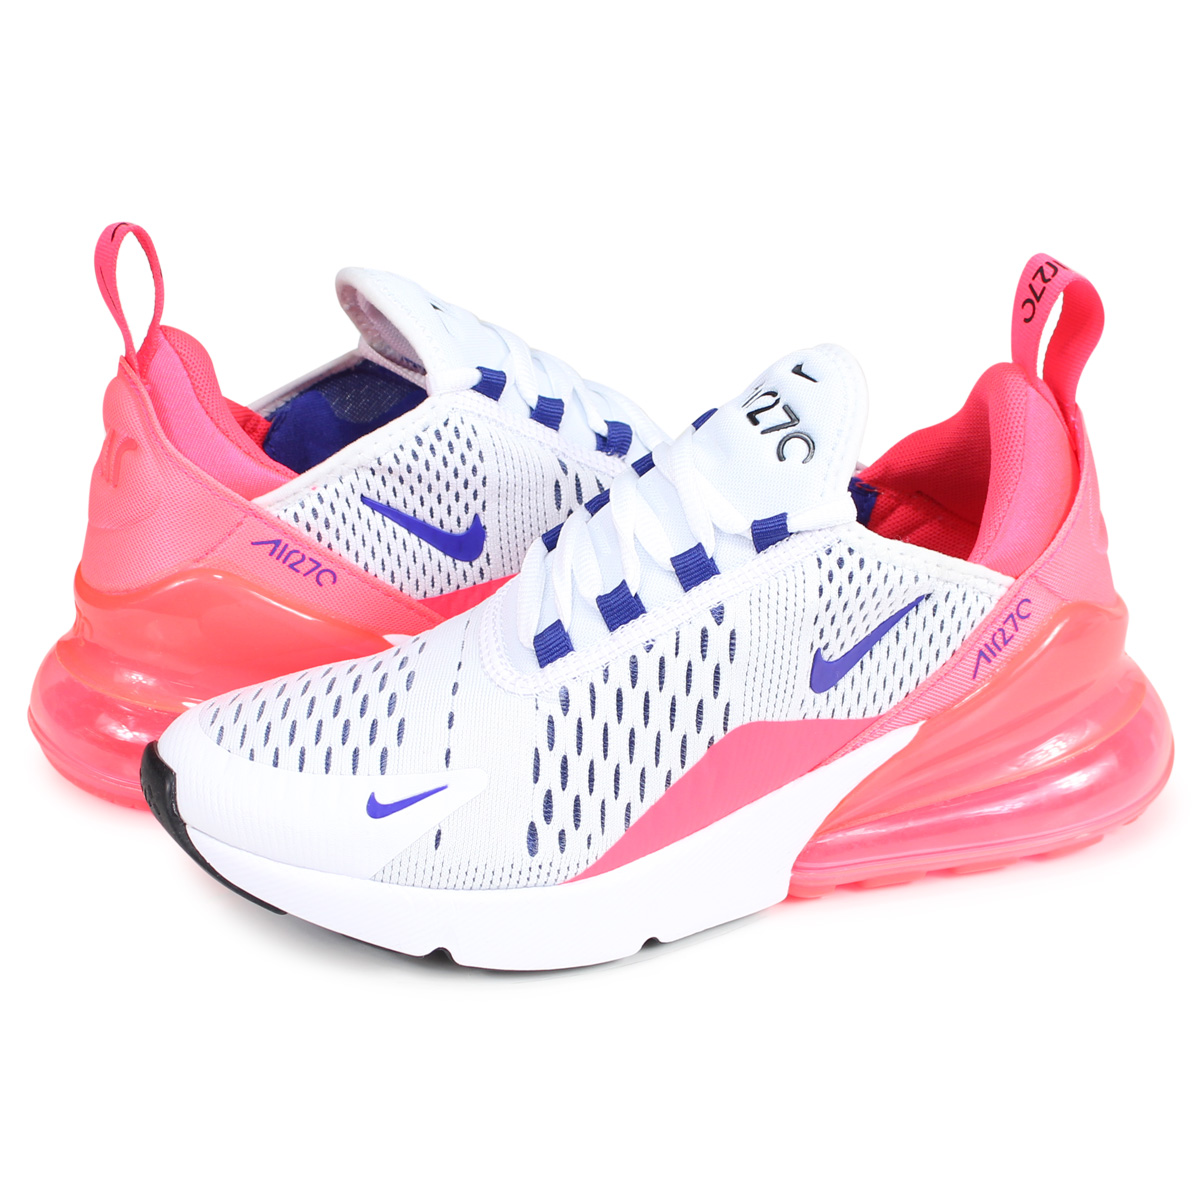 Nike NIKE Air Max 270 sneakers Lady's WMNS AIR MAX 270 white AH6789 101 [load planned Shinnyu load in reservation product 221 containing]